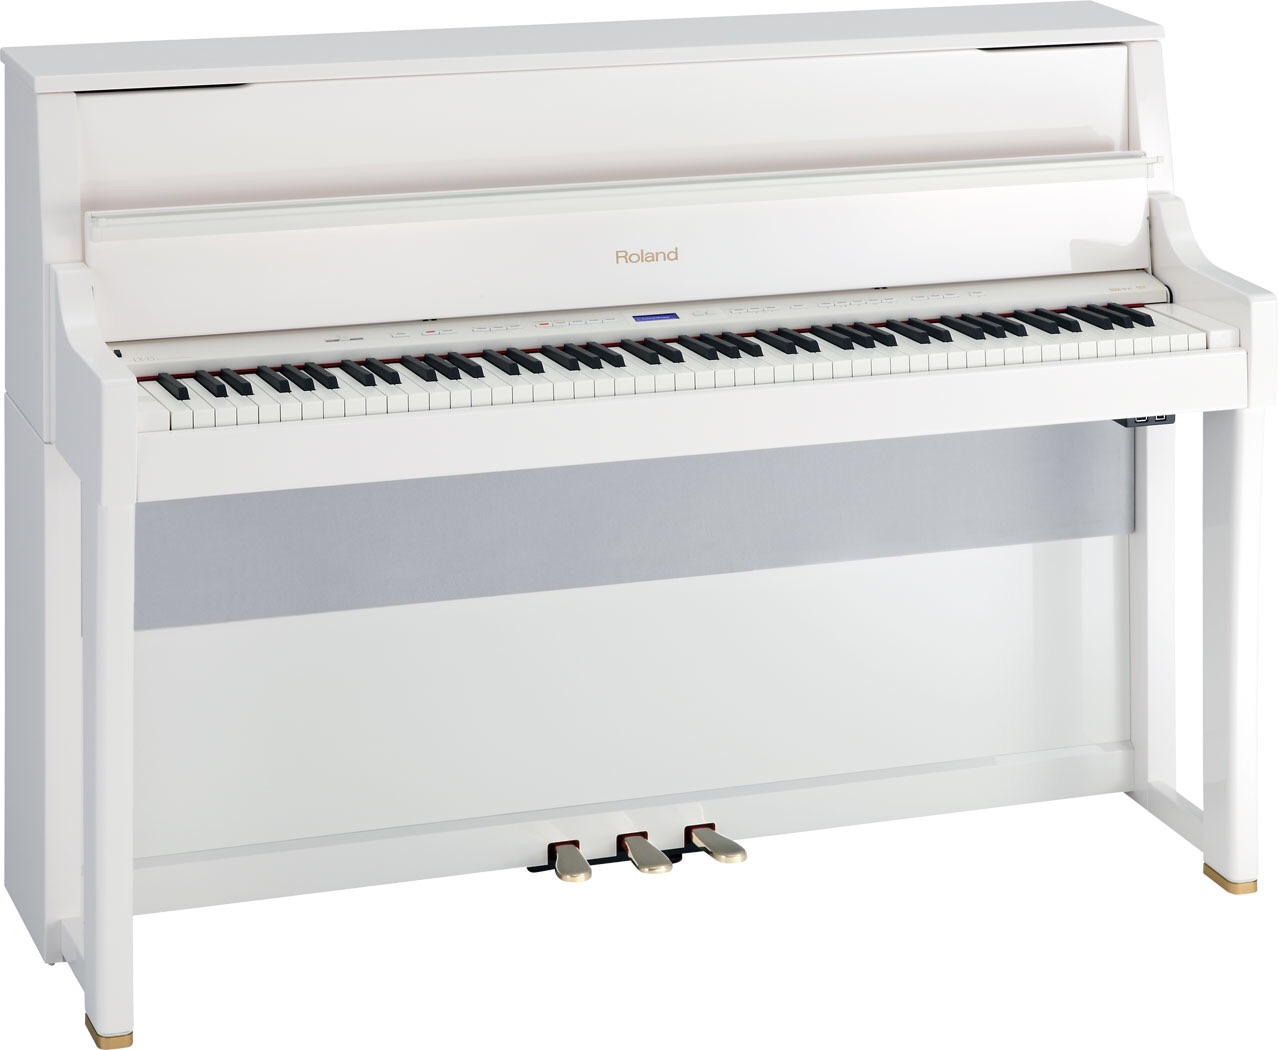 Piano Roland LX-15-PW - Piano điện Roland - Piano Việt Nhật